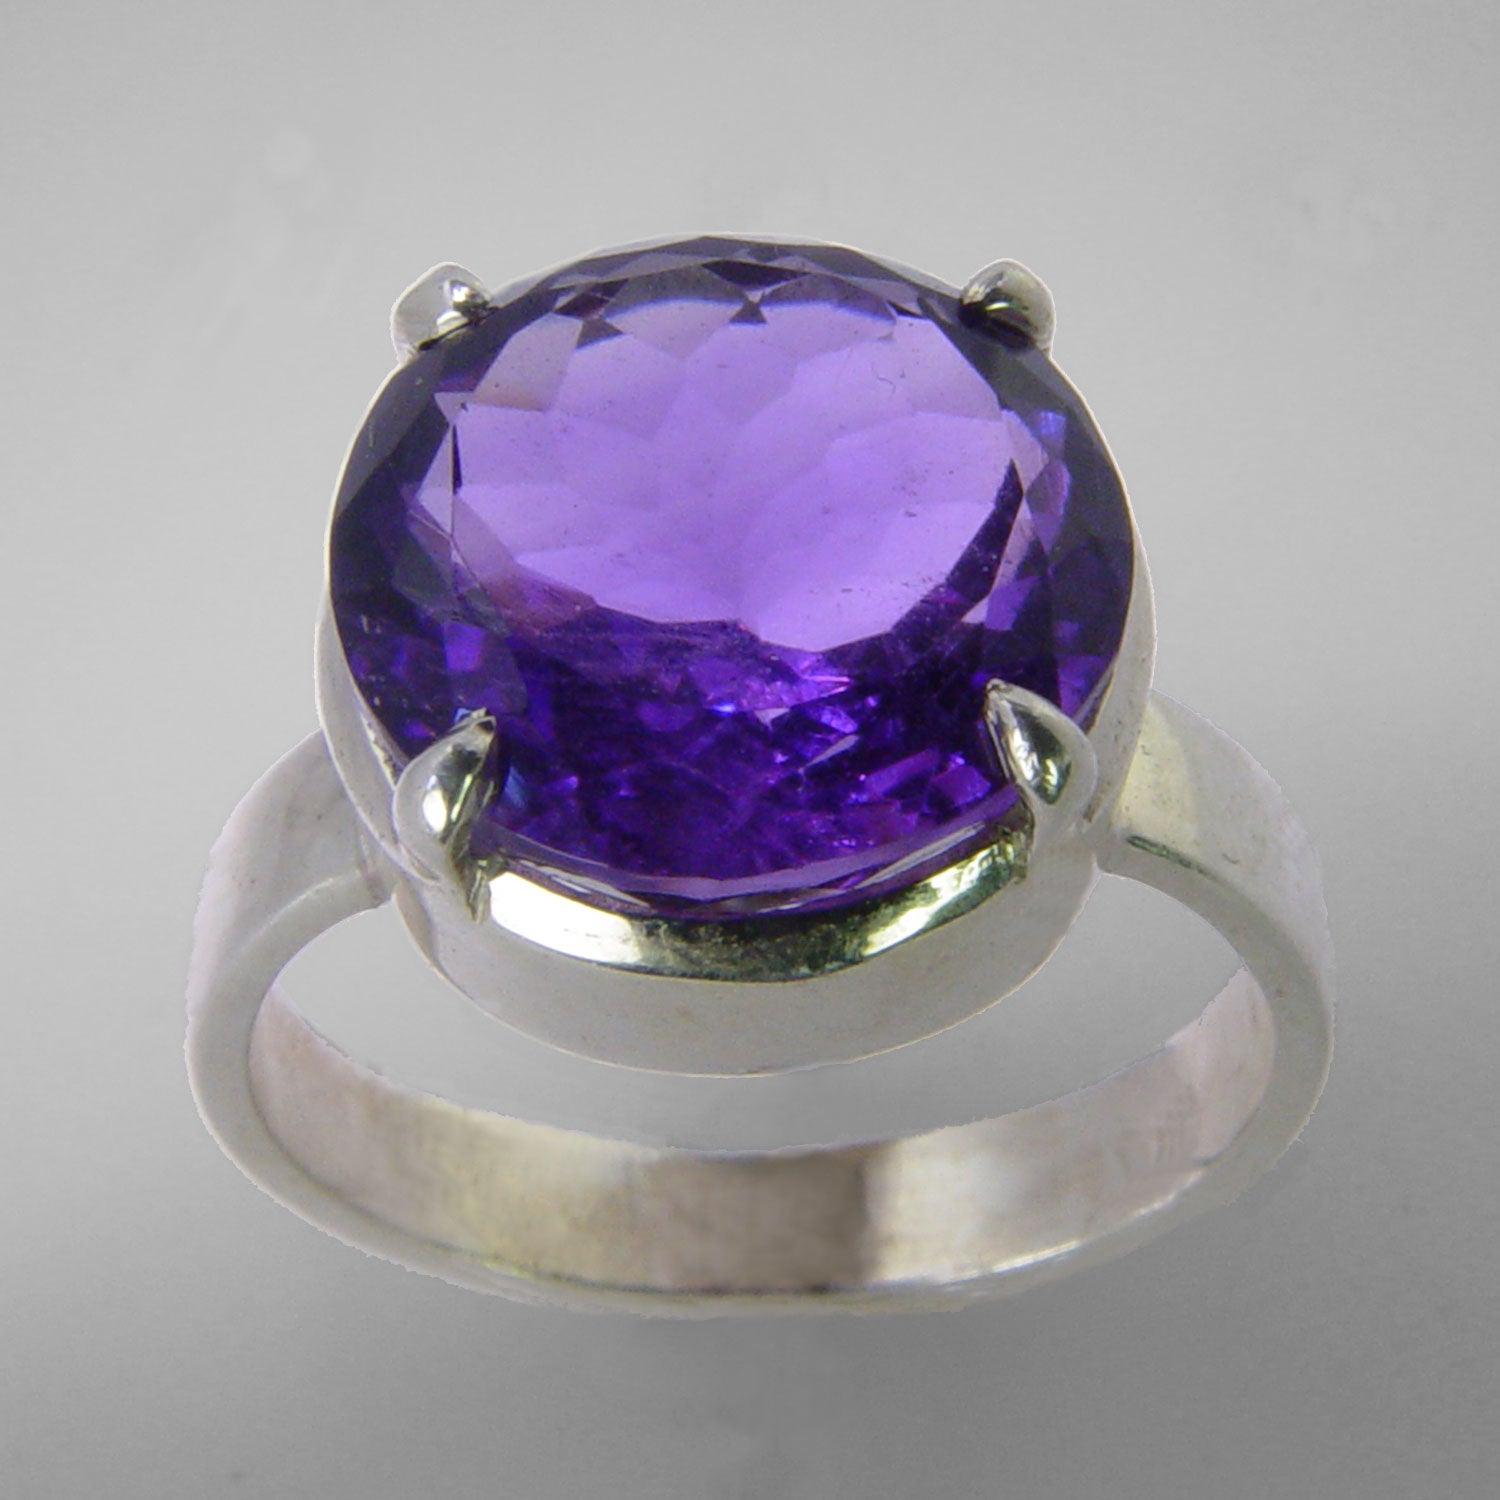 Amethyst 7 ct Faceted Round Sterling Silver Ring, Size 9